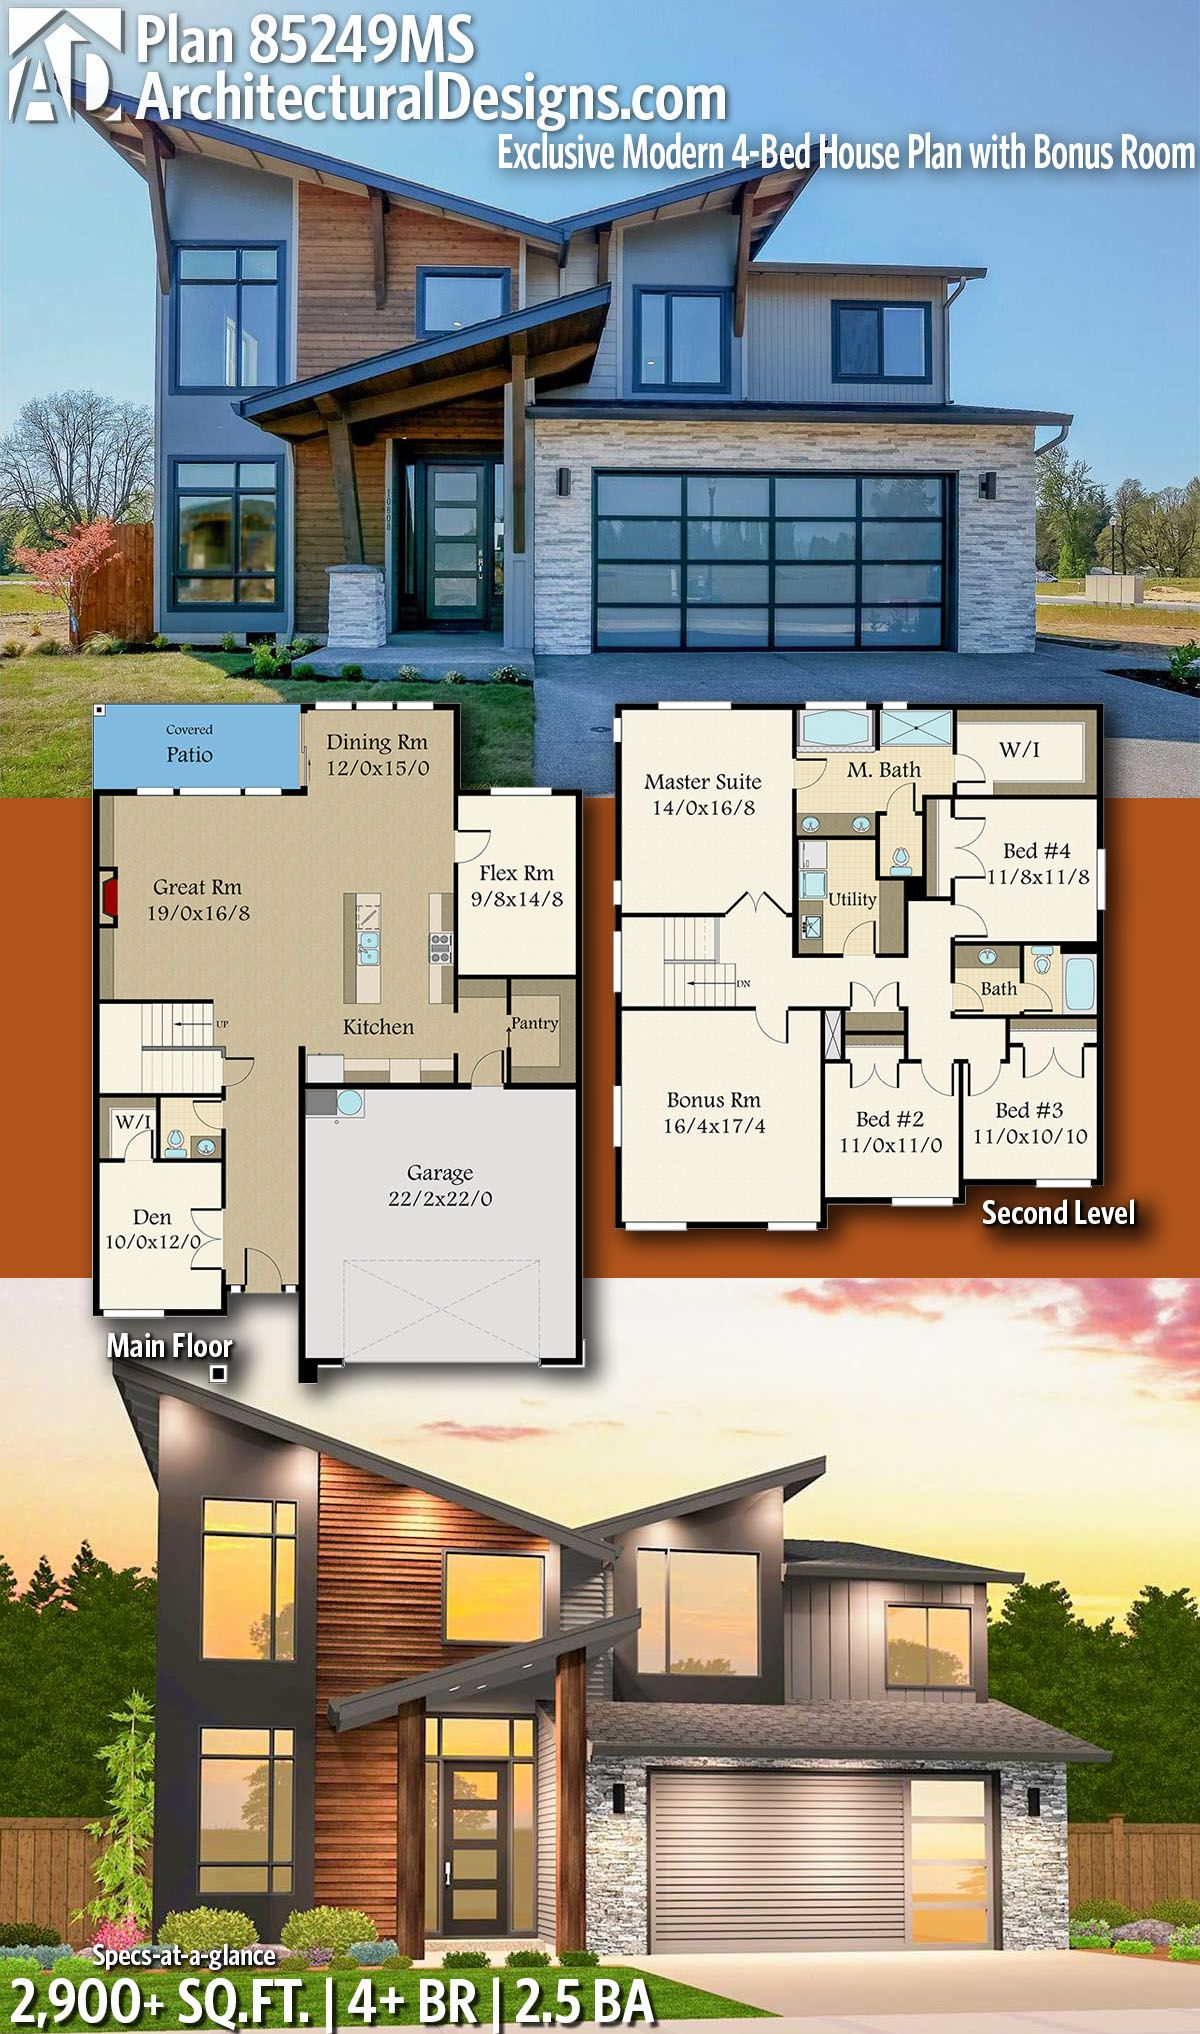 Architectural Designs Exclusive Modern House Plan 85249MS